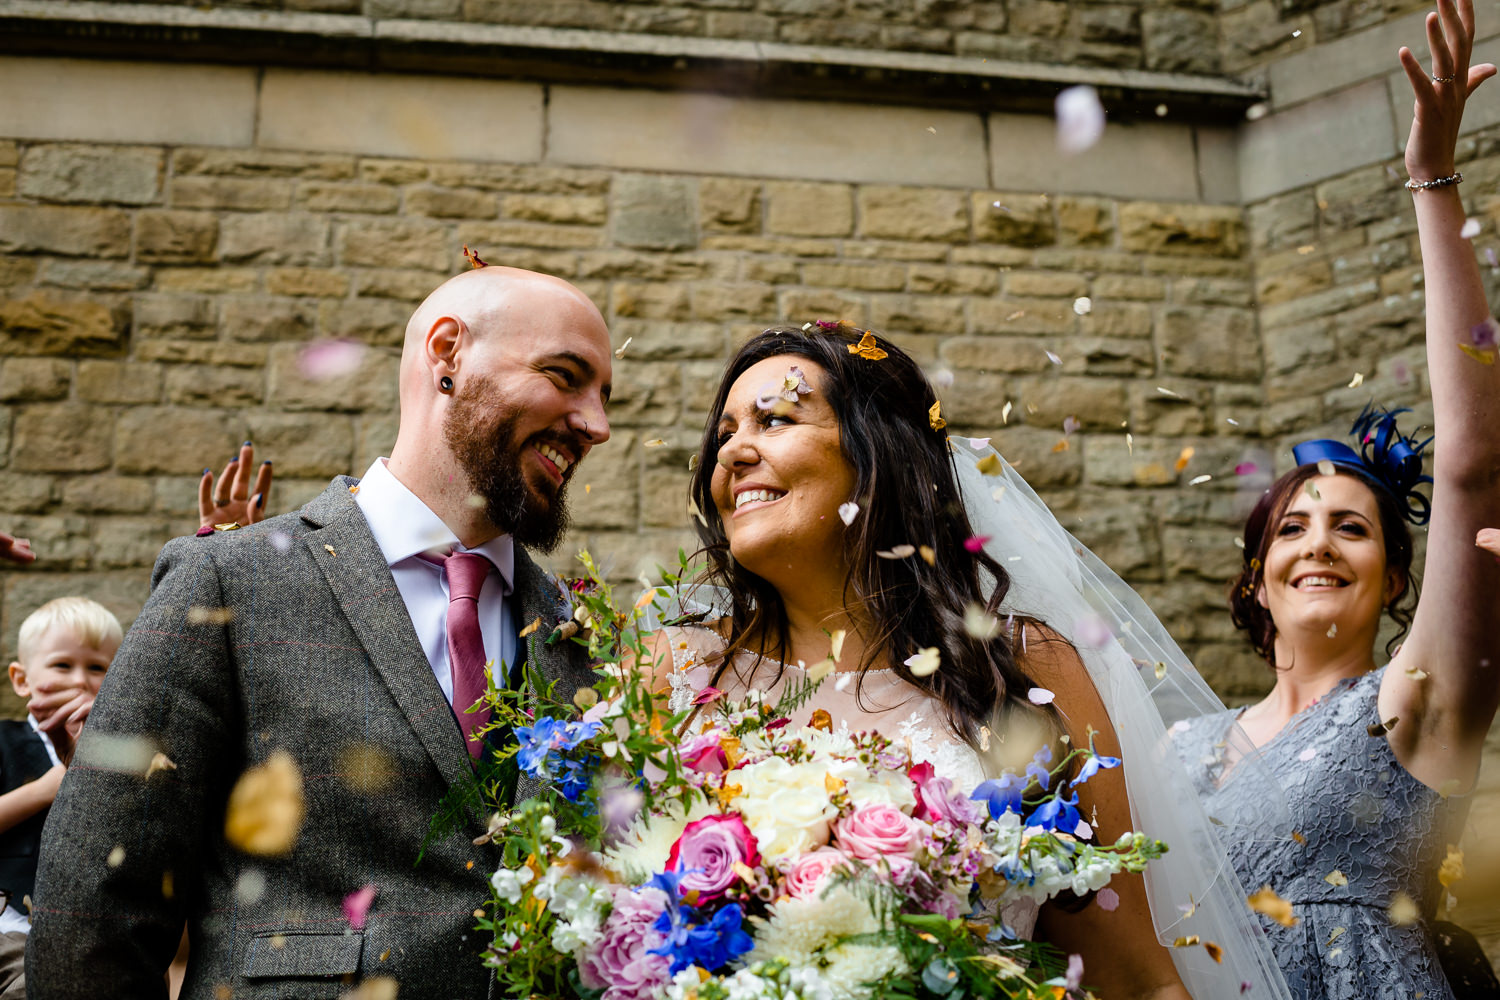 A bride and groom smile at each other with confetti